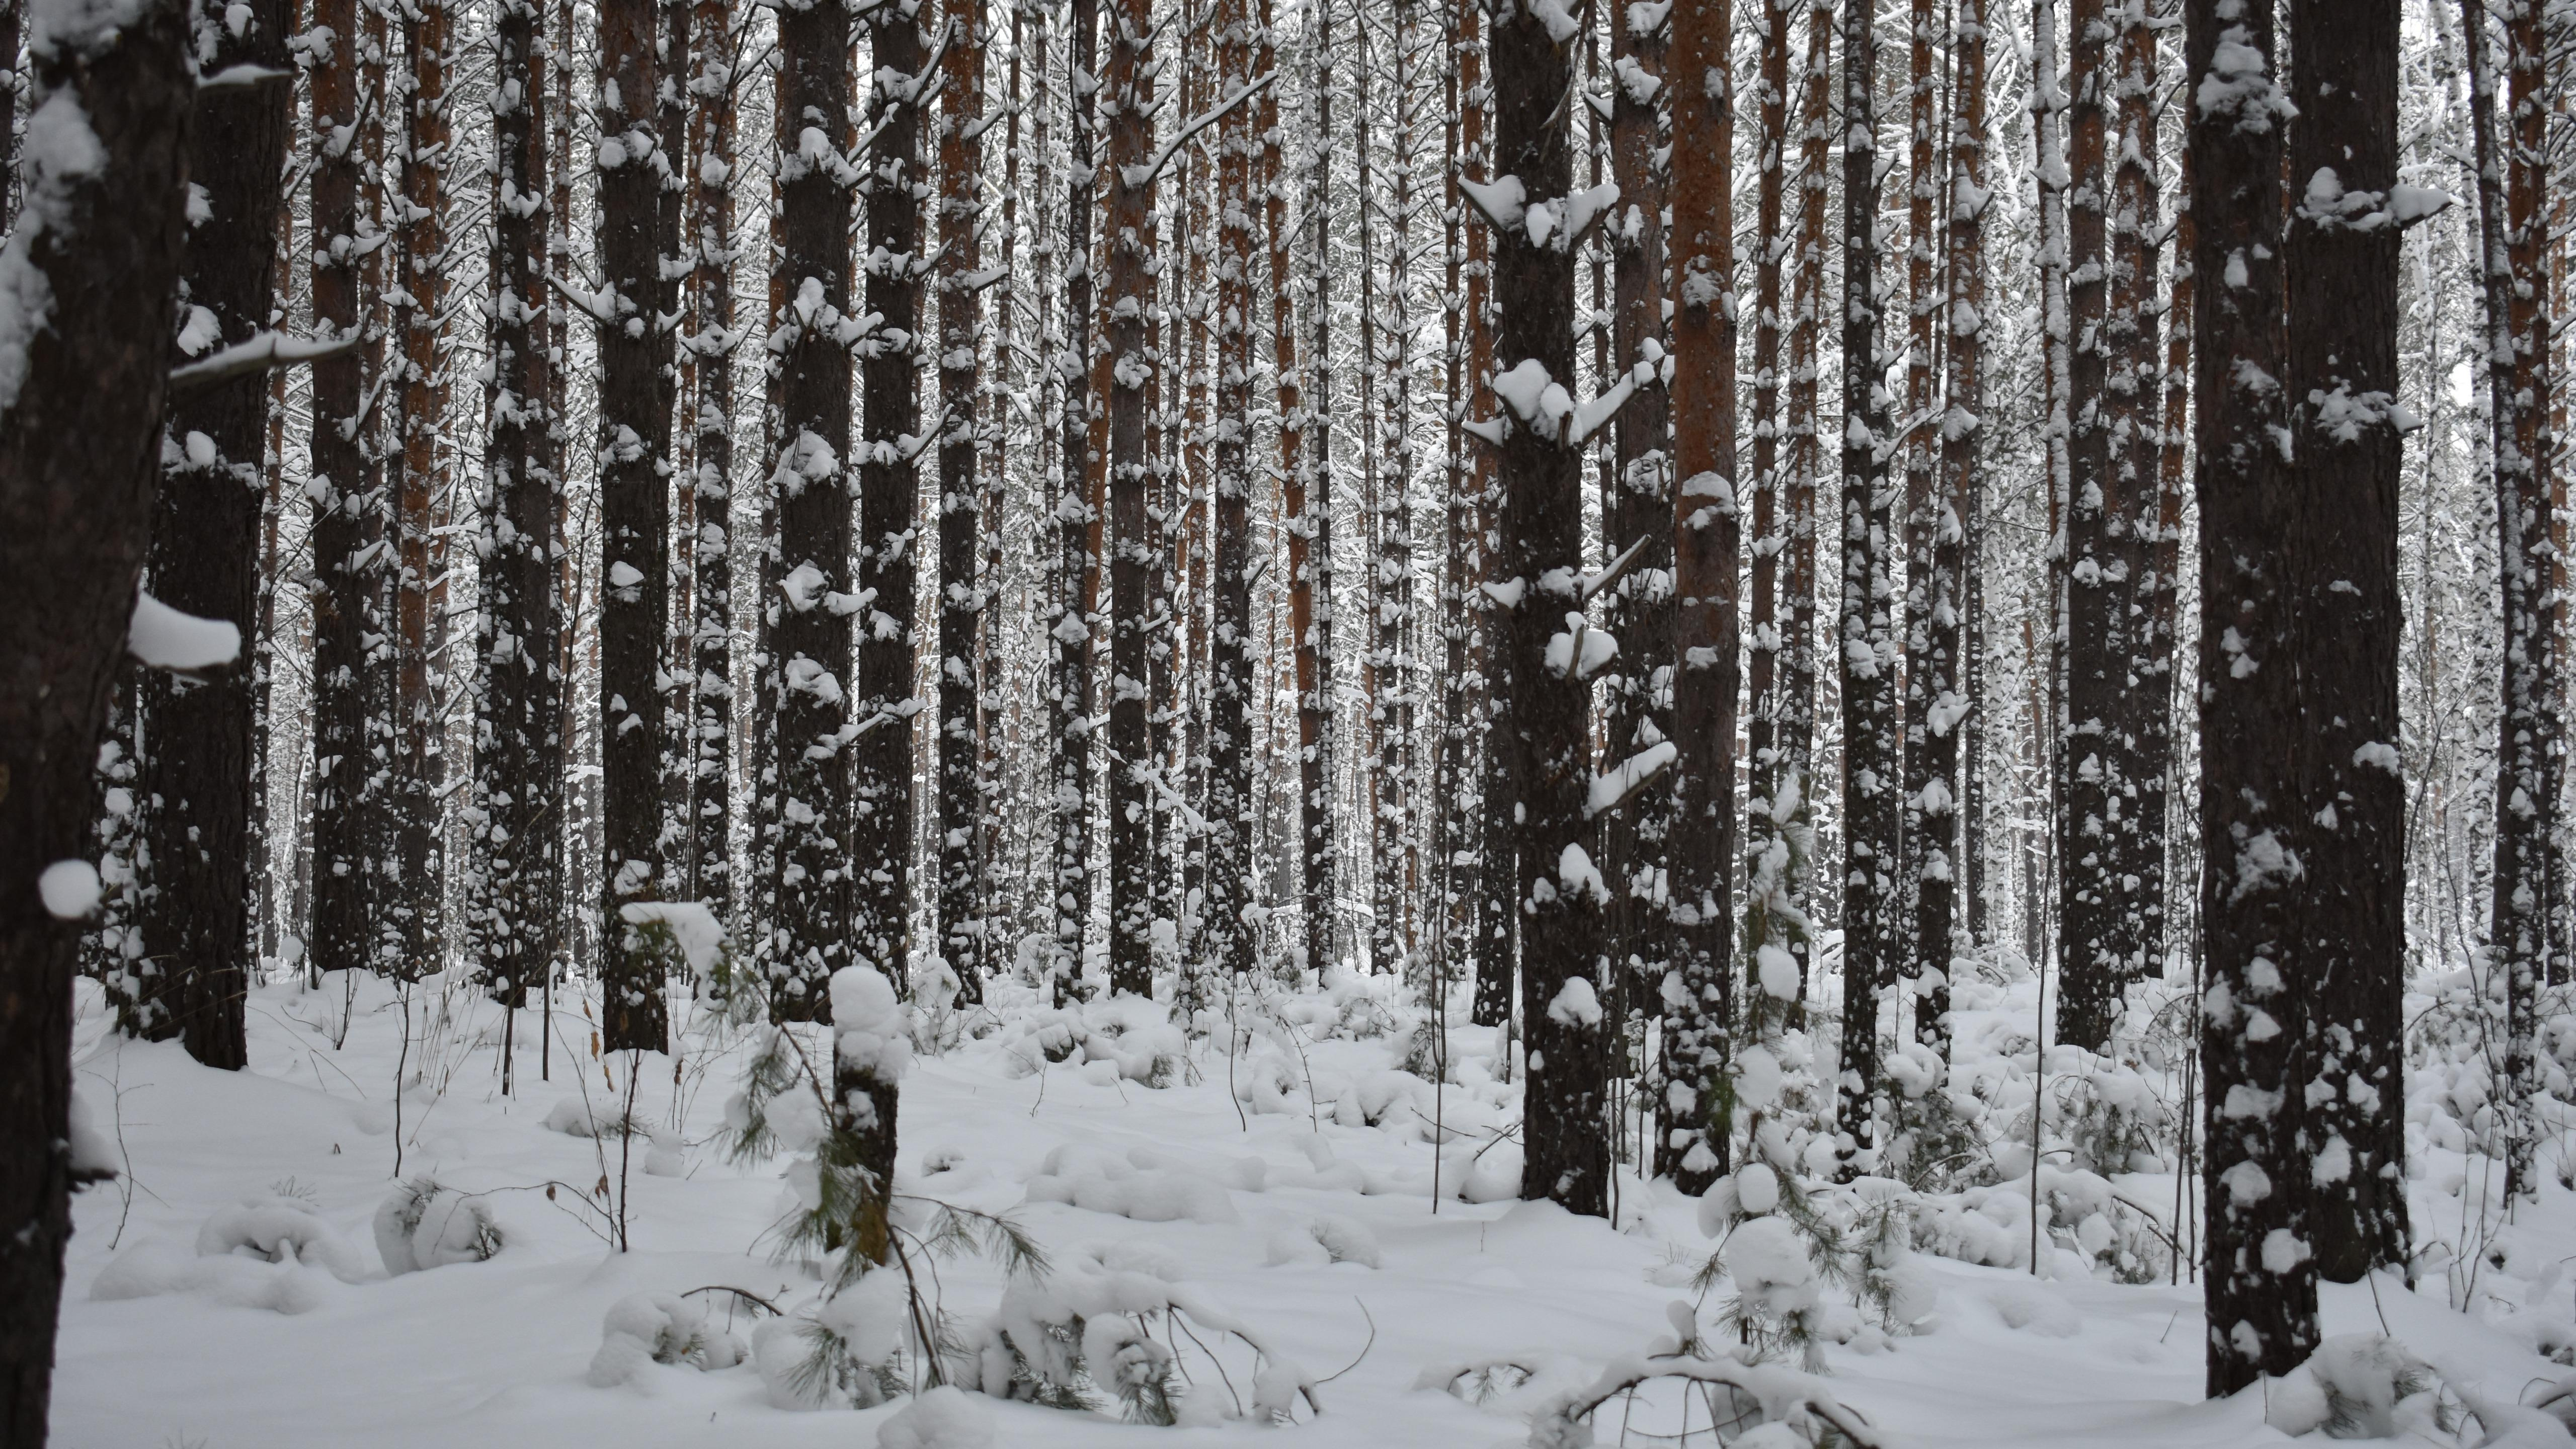 Snowy forest in Novosibirsk (Russia) wallpaper